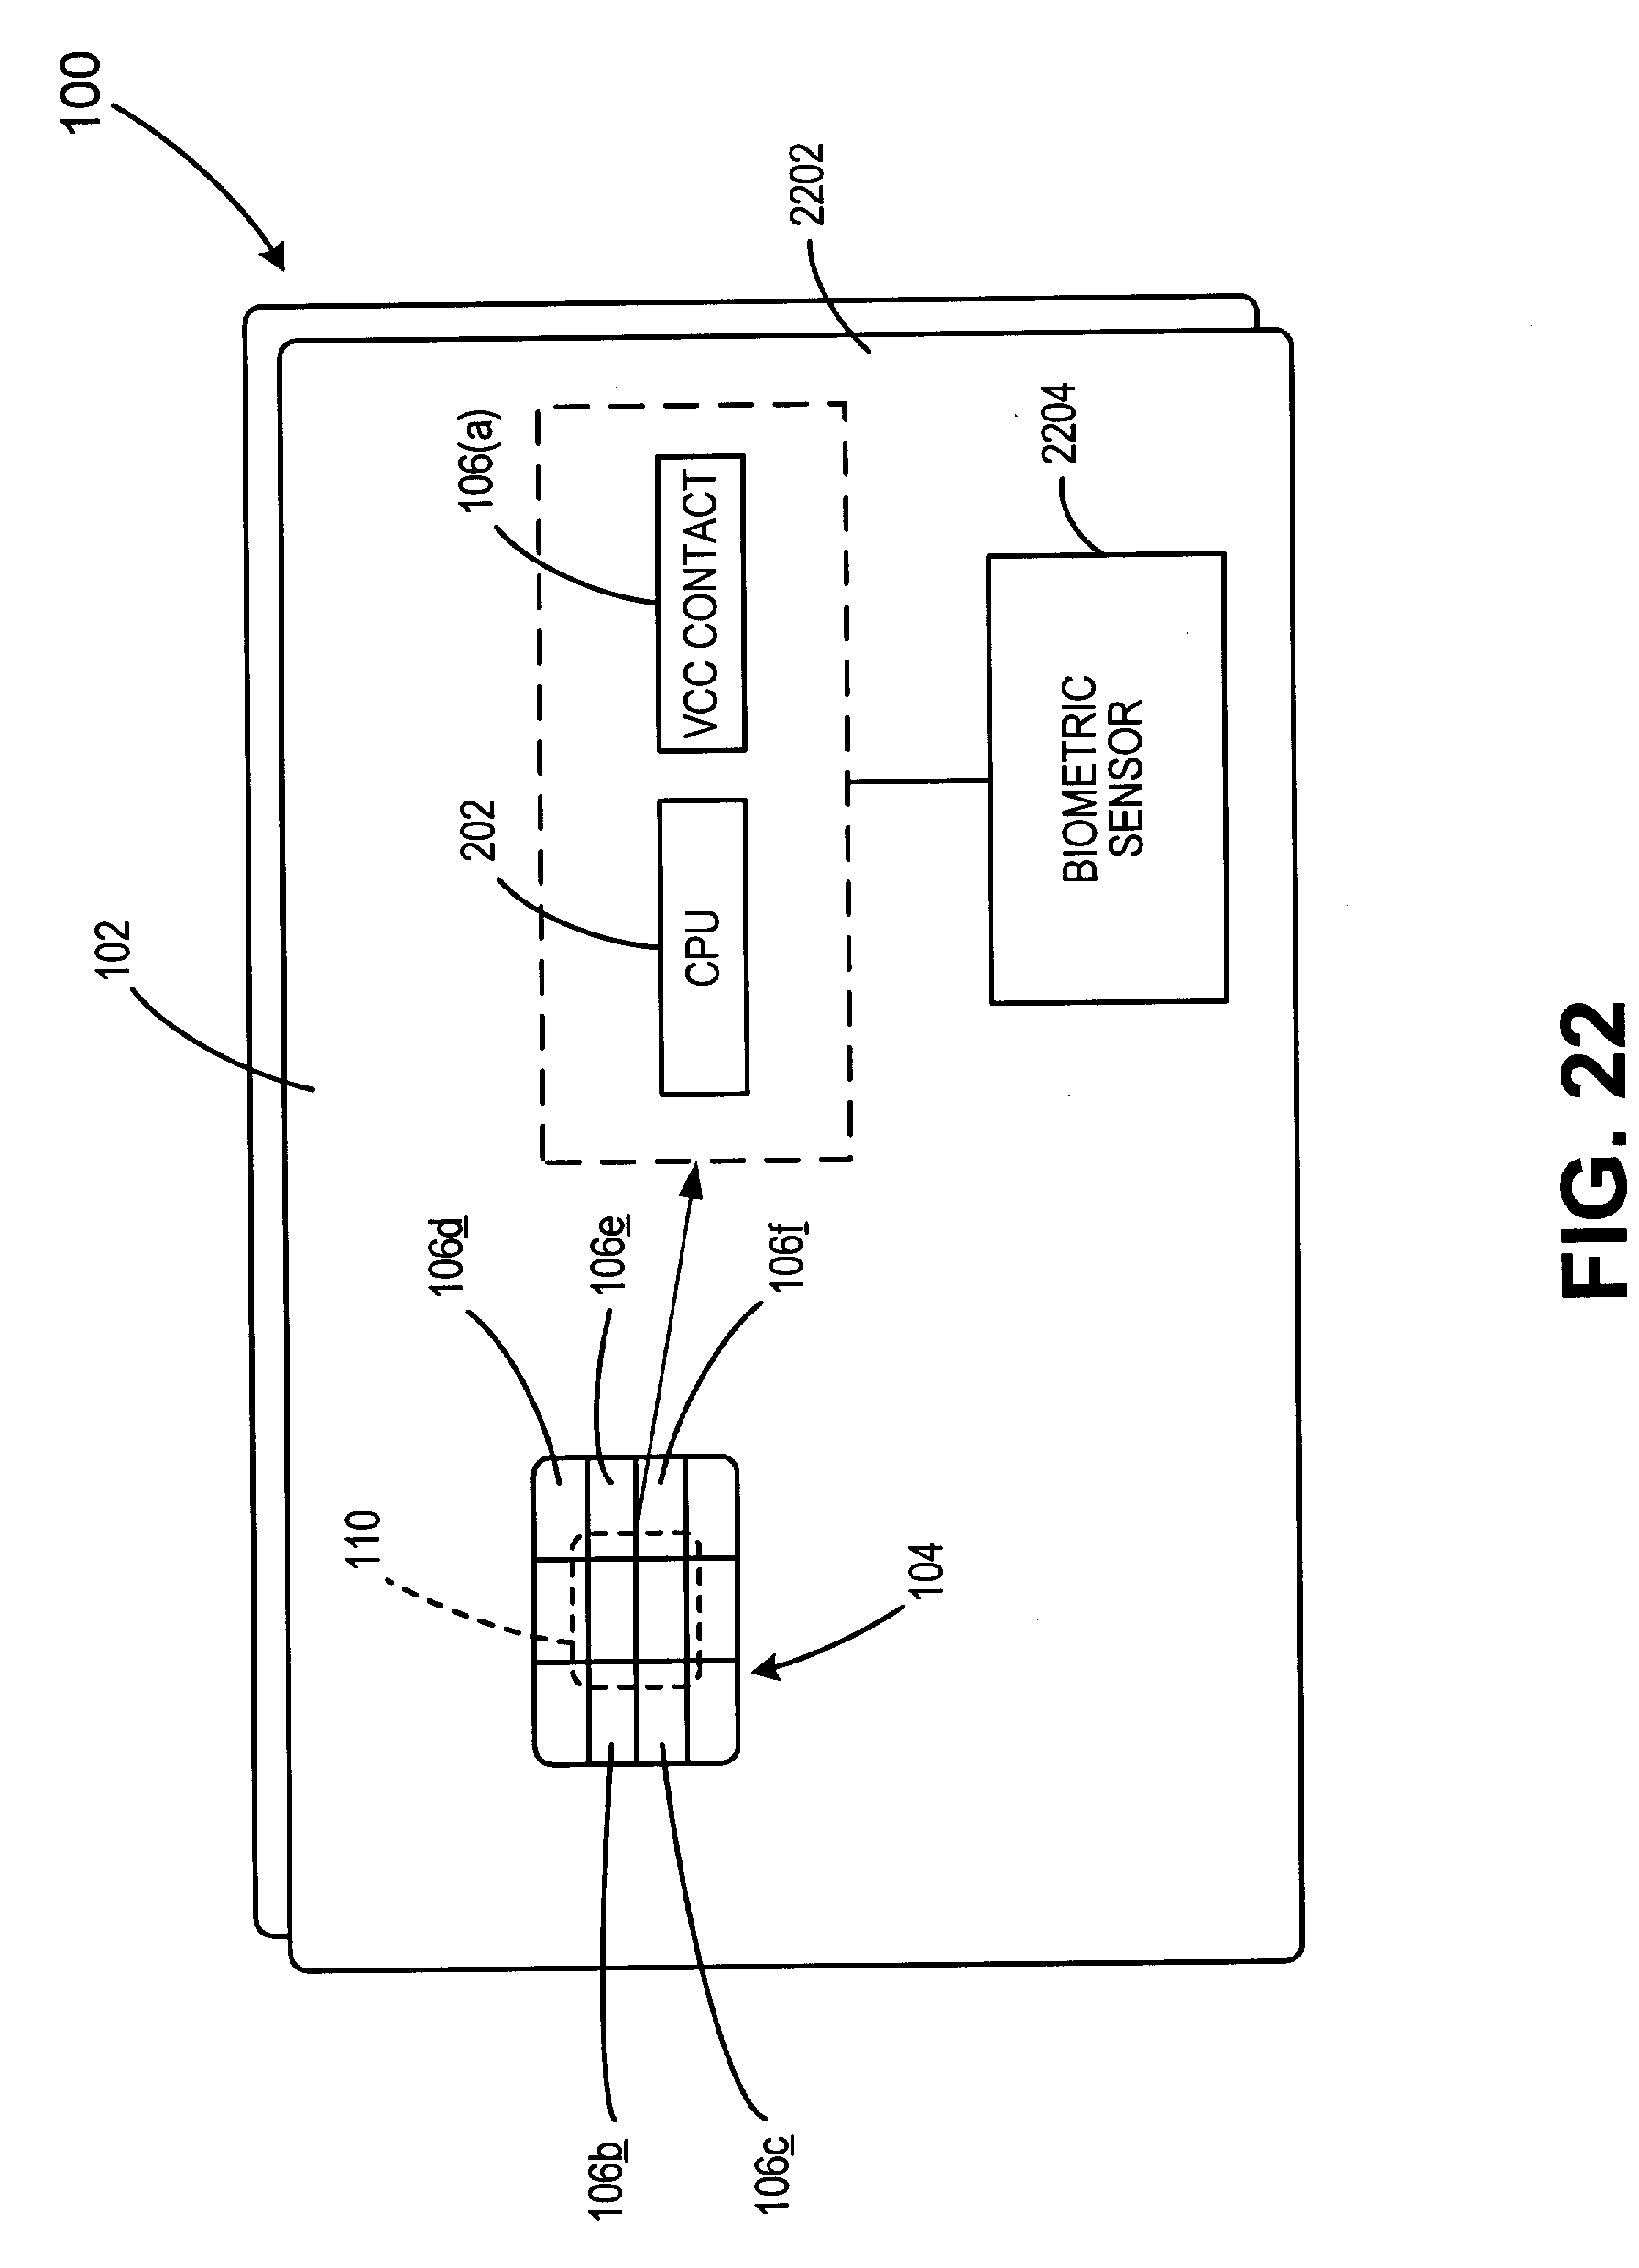 Patent Us7341181 Method For Biometric Security Using A Smartcard Trailer Wiring Diagram Rsa Drawing